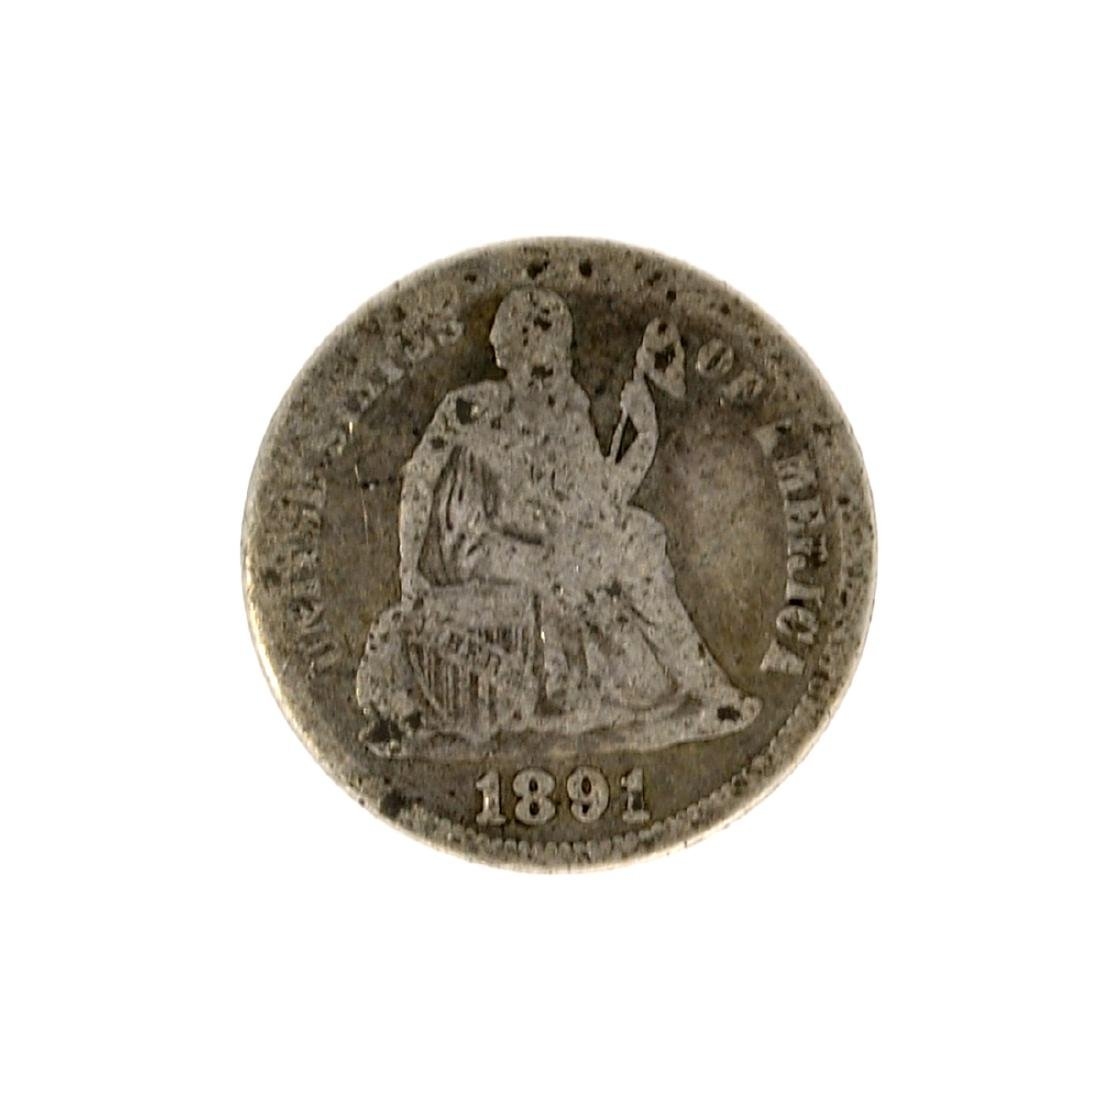 1891 Liberty Seated Dime Coin